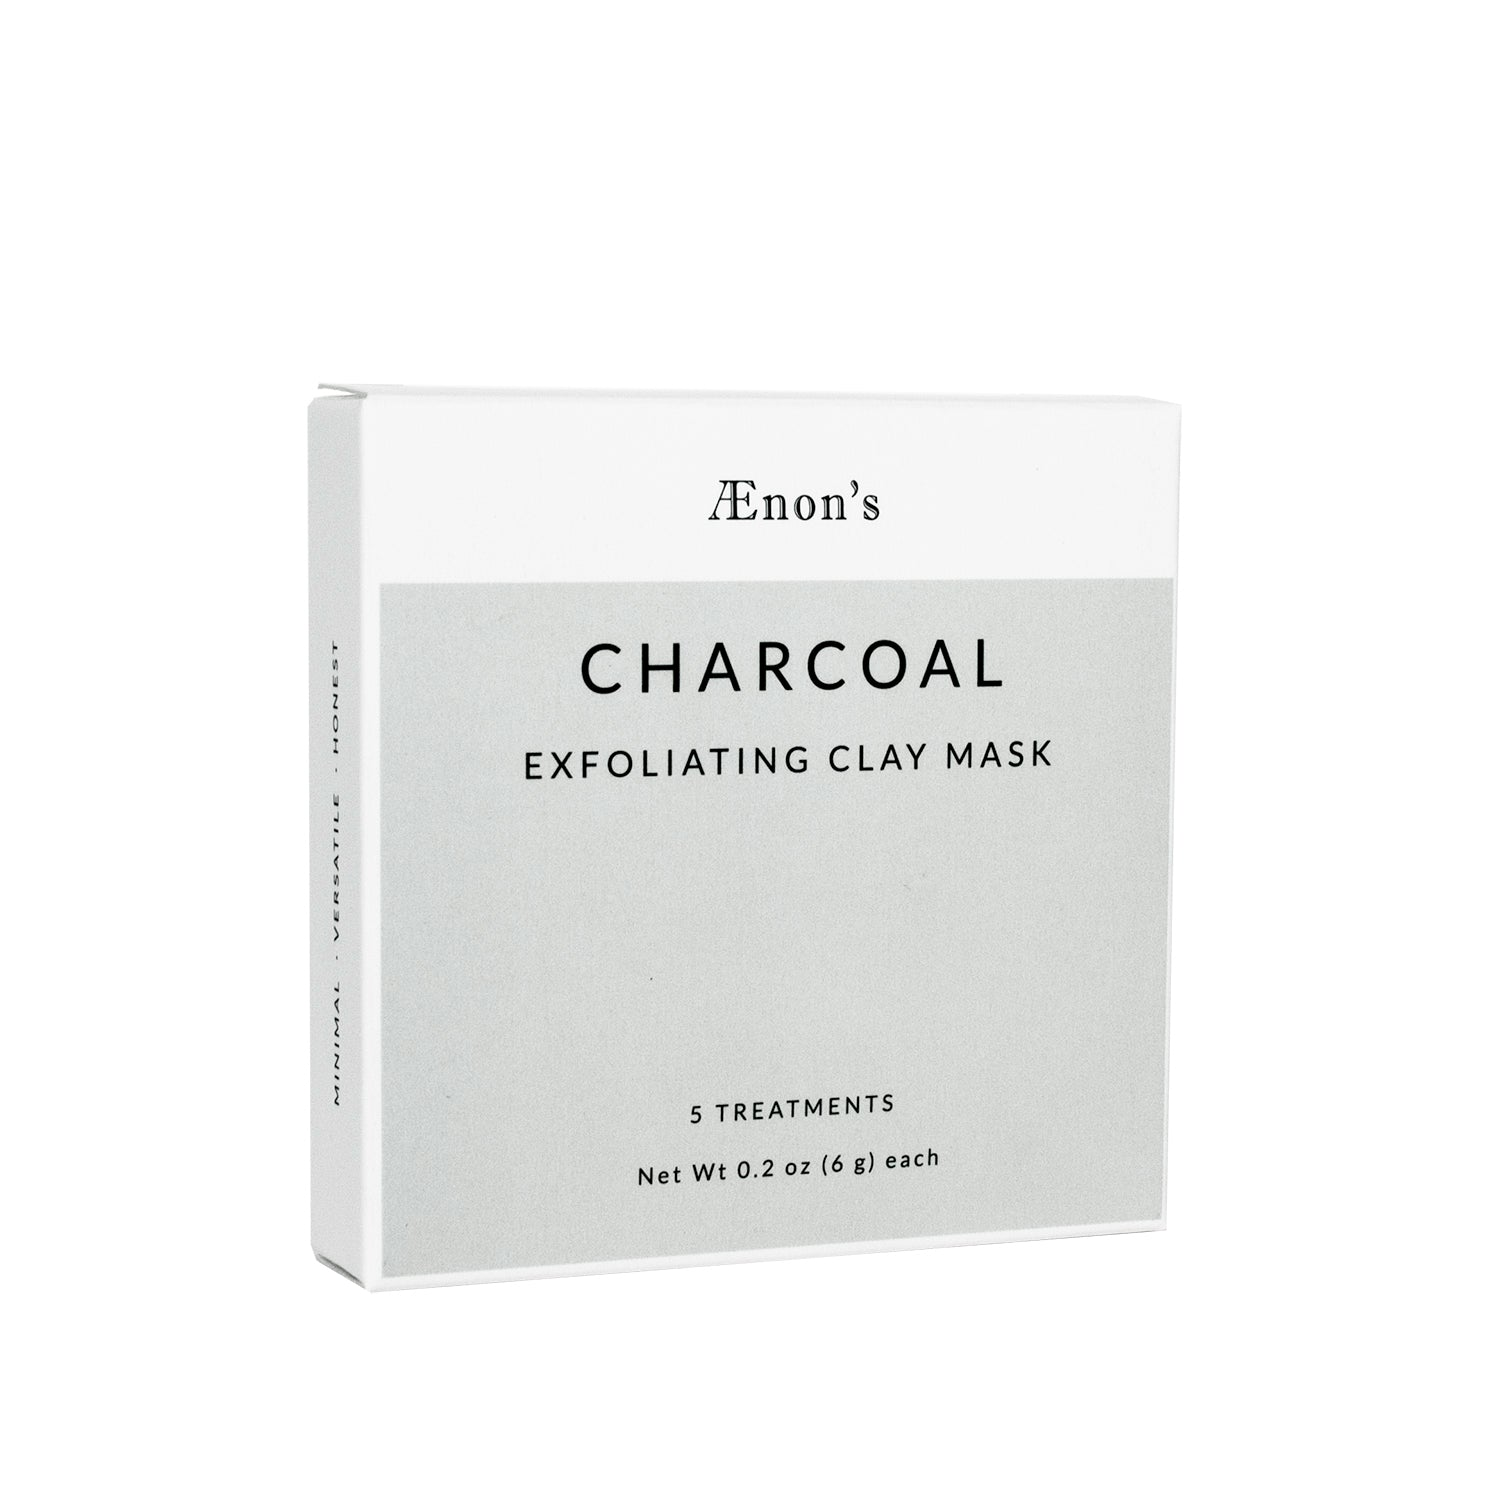 AEnon's - Charcoal Exfoliating Clay Mask